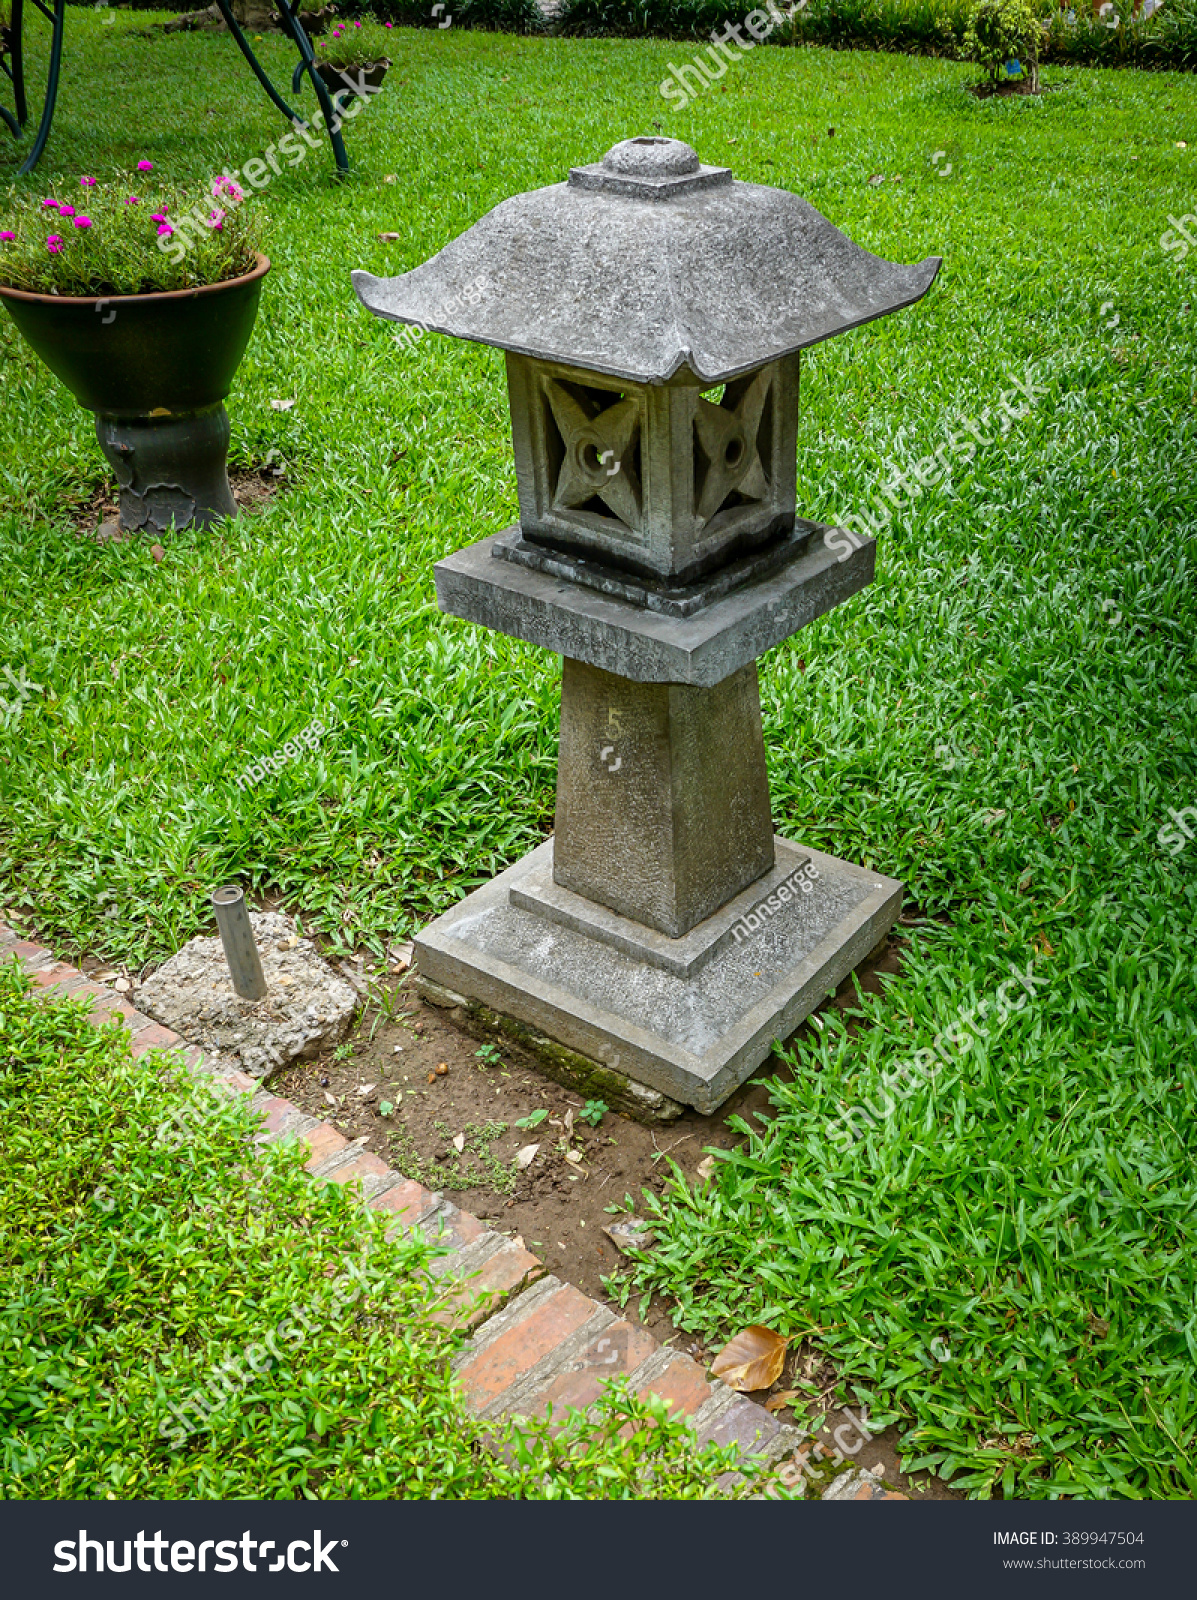 Zen Decoration Stone Lamp Van Mieu Stock Photo 389947504 ... for Temple Stone Lamp  303mzq